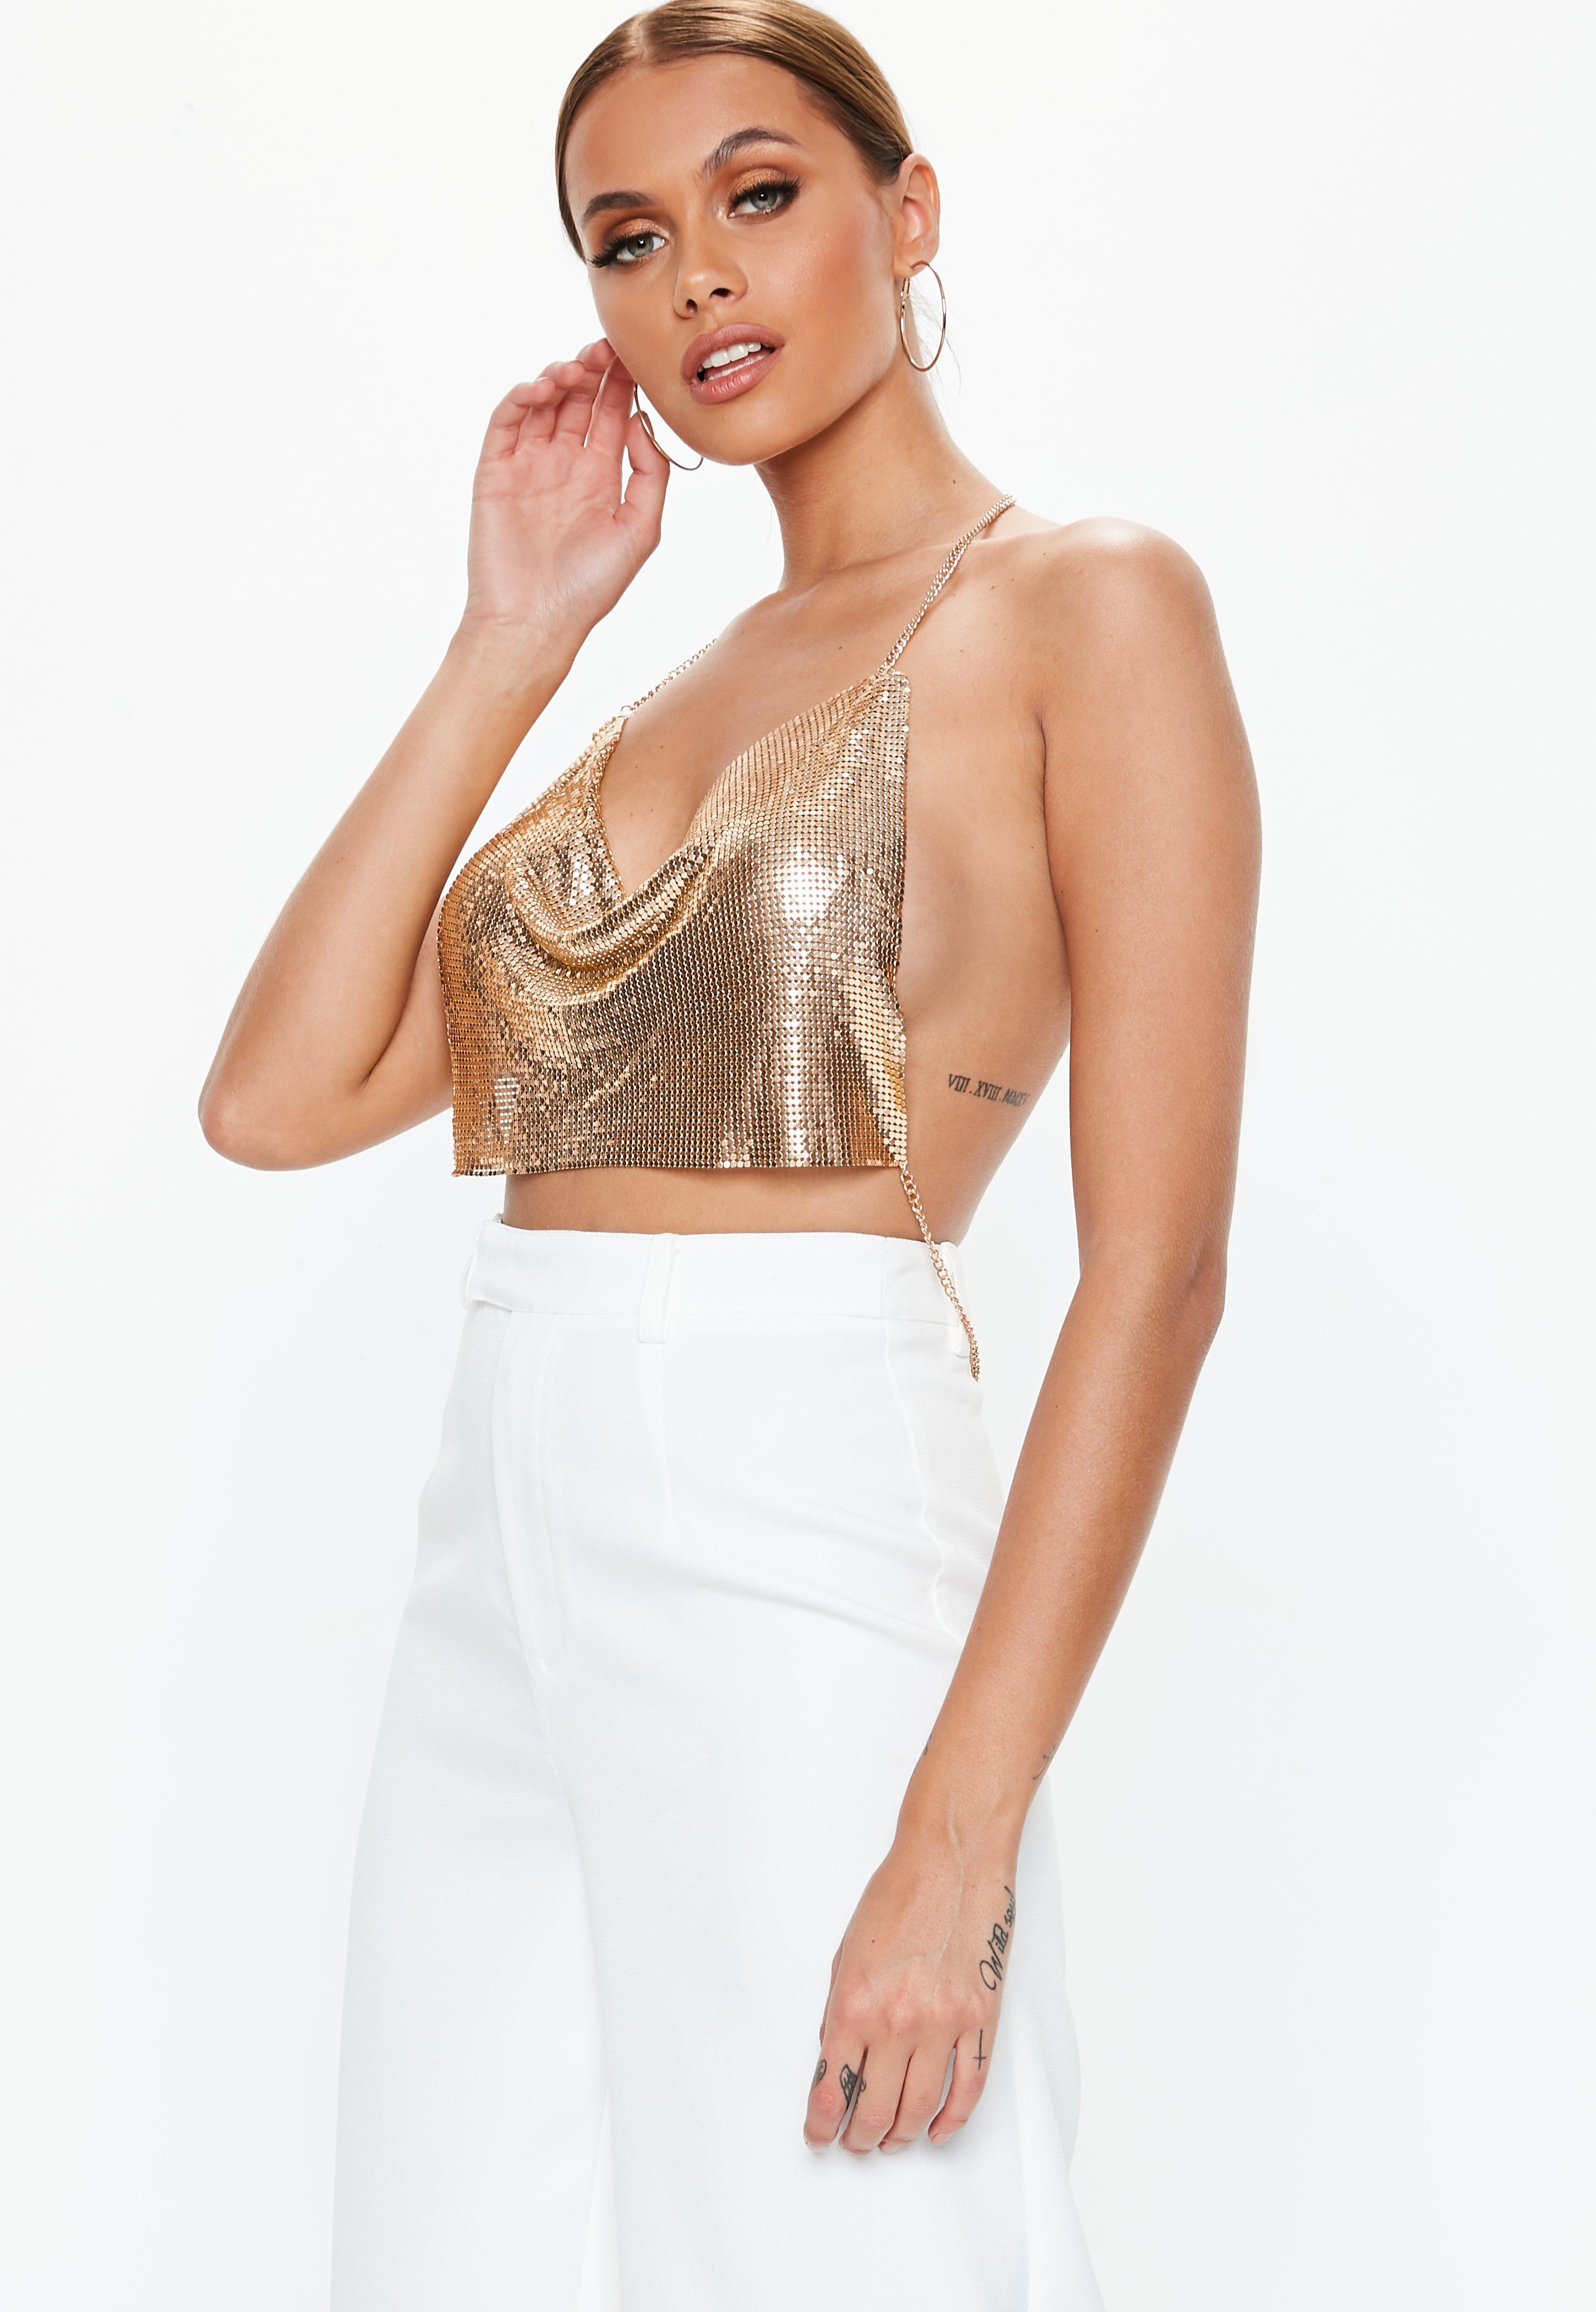 Backless Tops | Open Back & Low Back Tops - Missguided